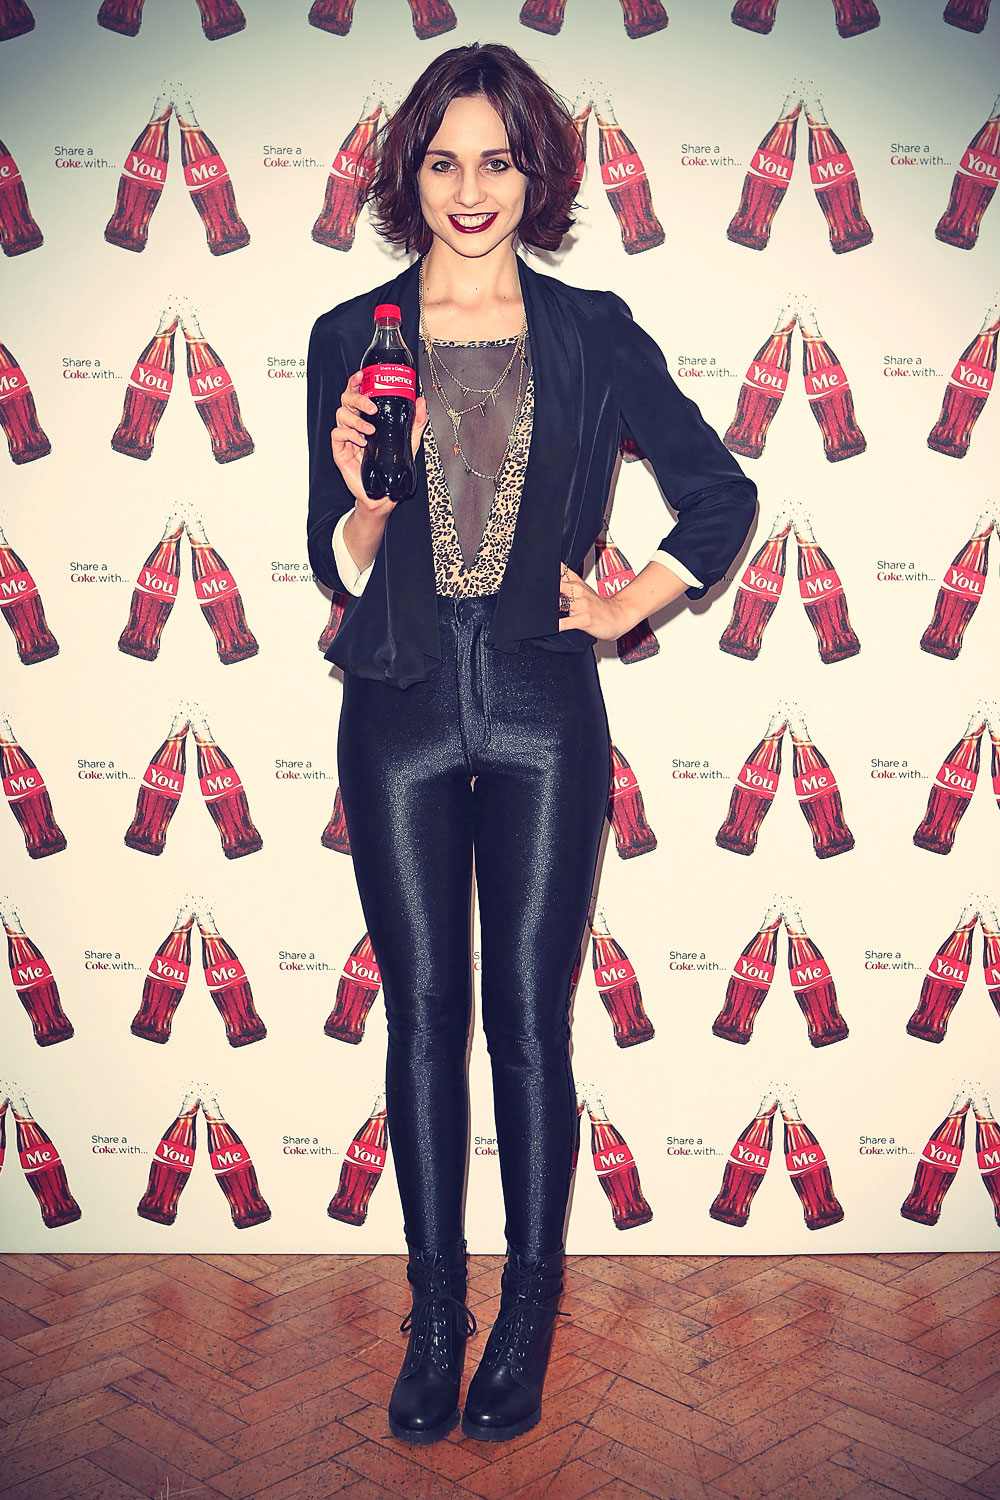 Tuppence Middleton at the launch of Coca-Cola's Share a Coke